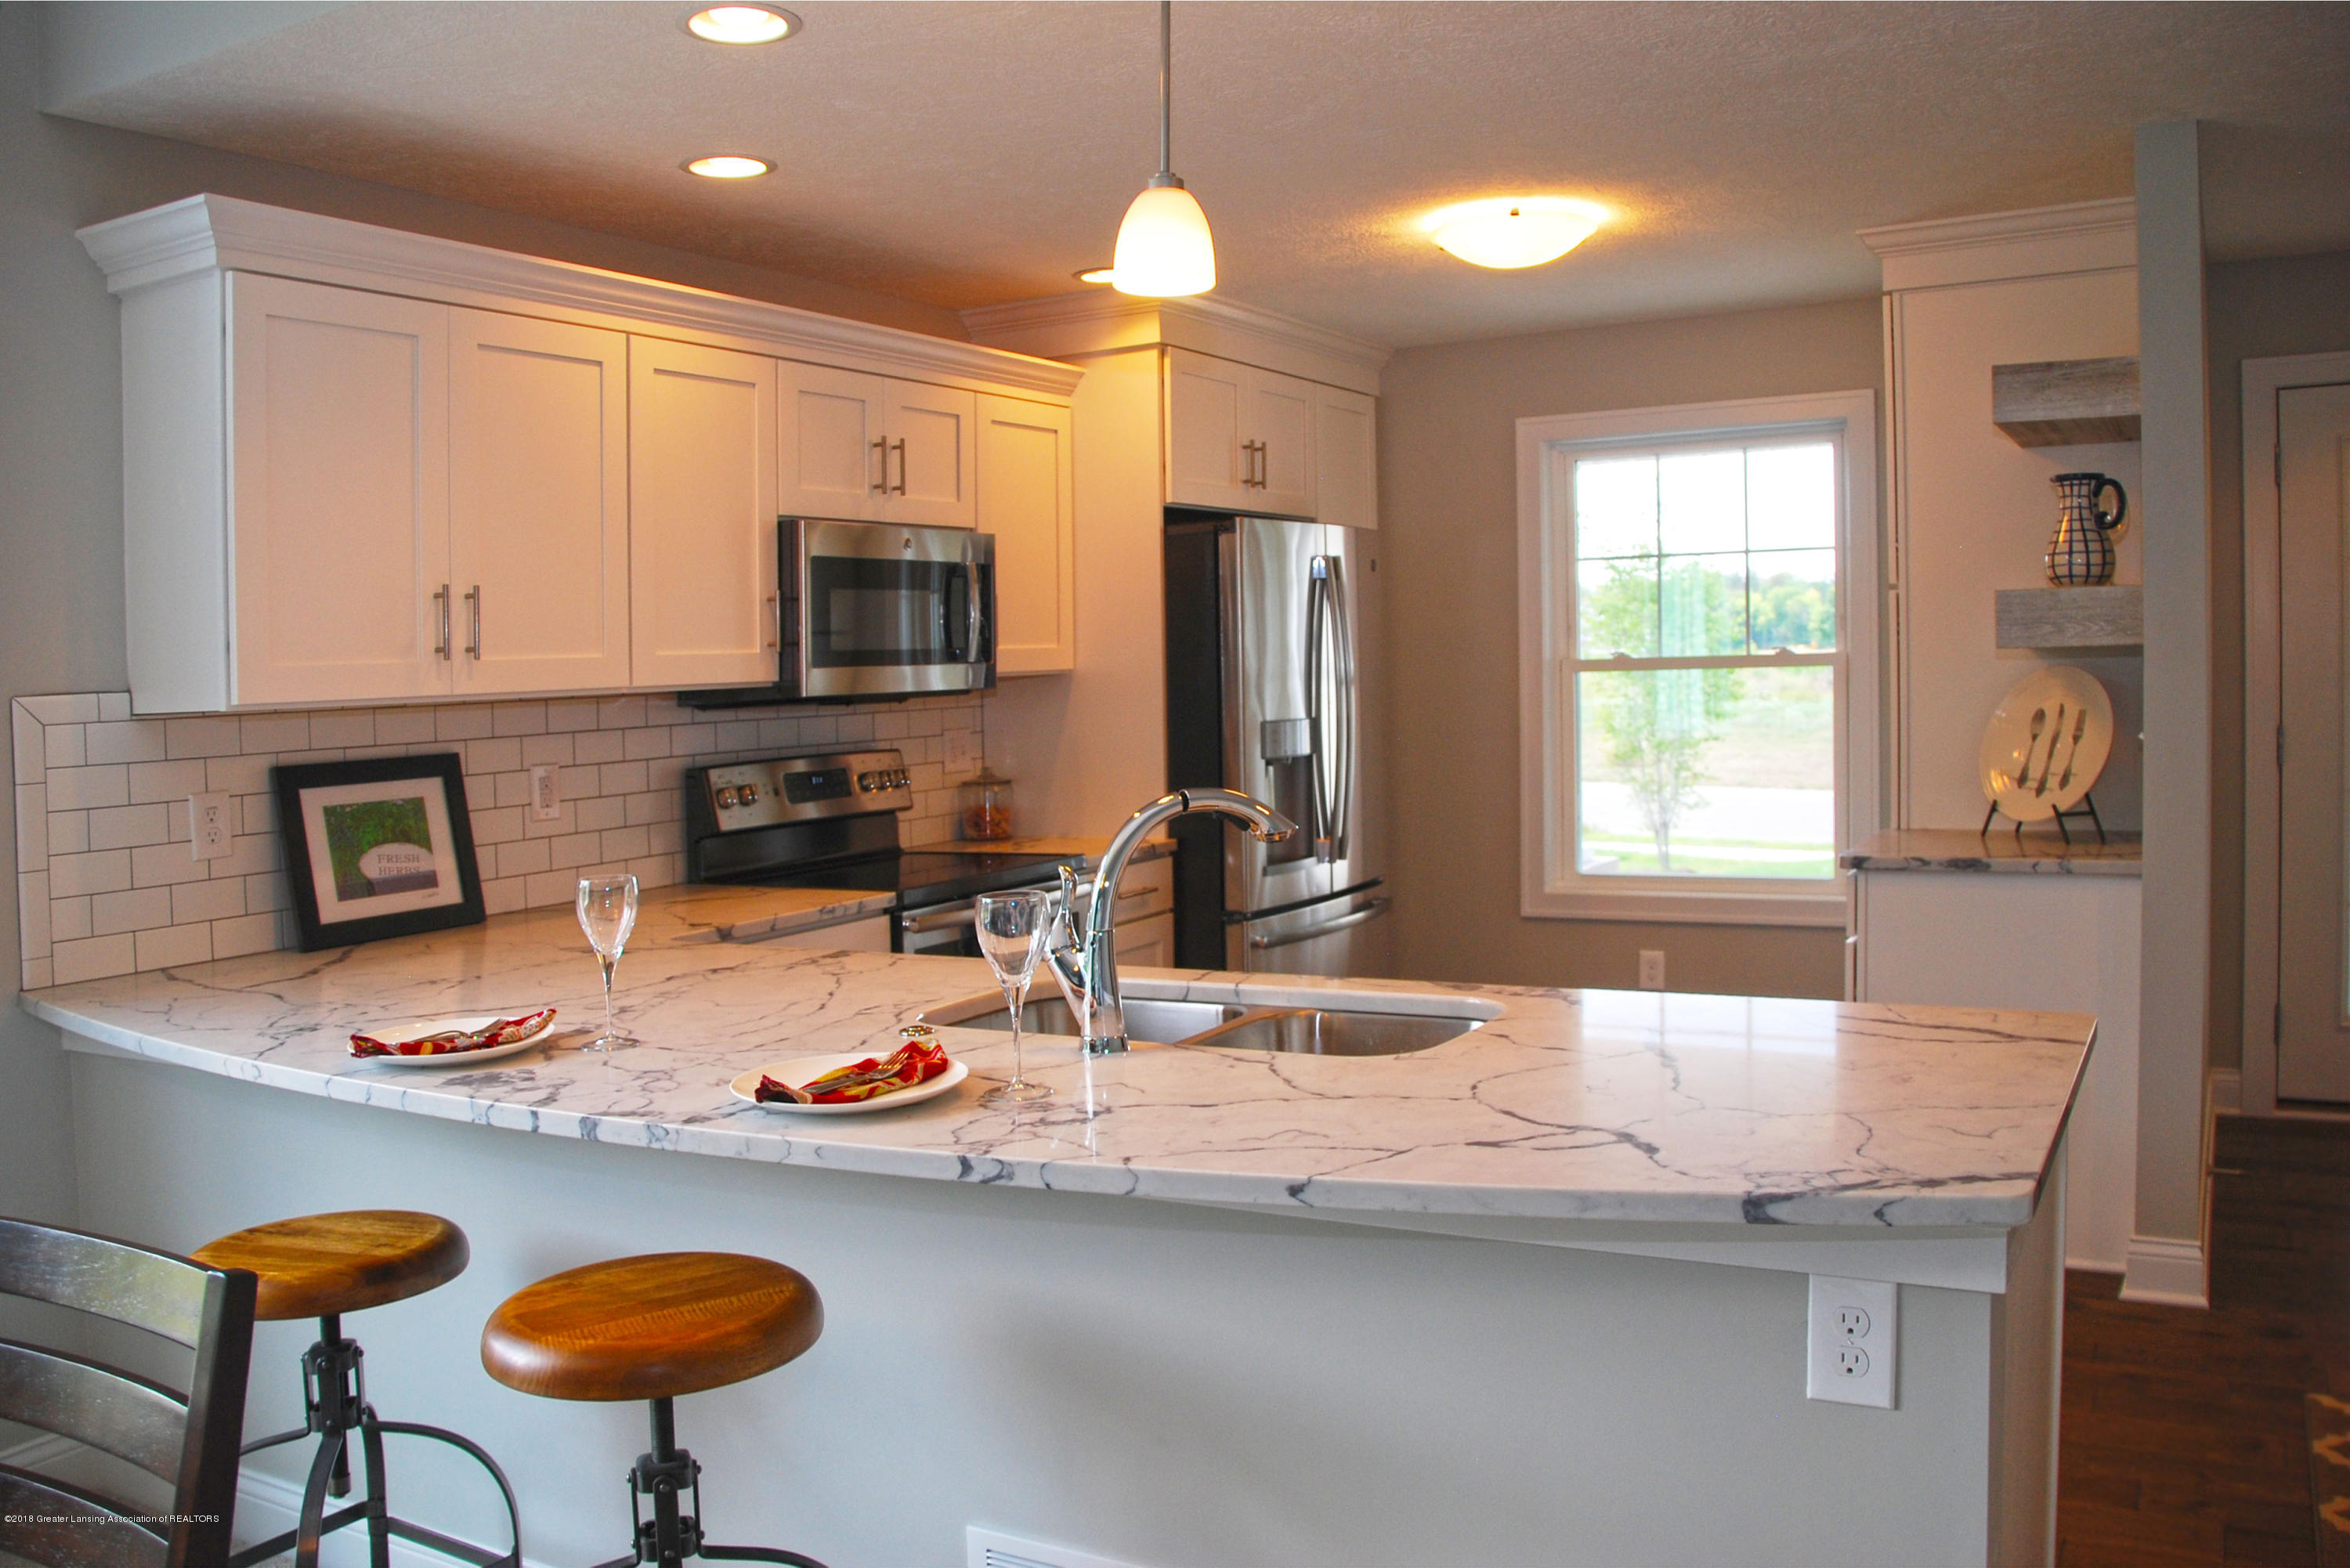 5270 Hawk Hollow Dr E - kitchen example - 2